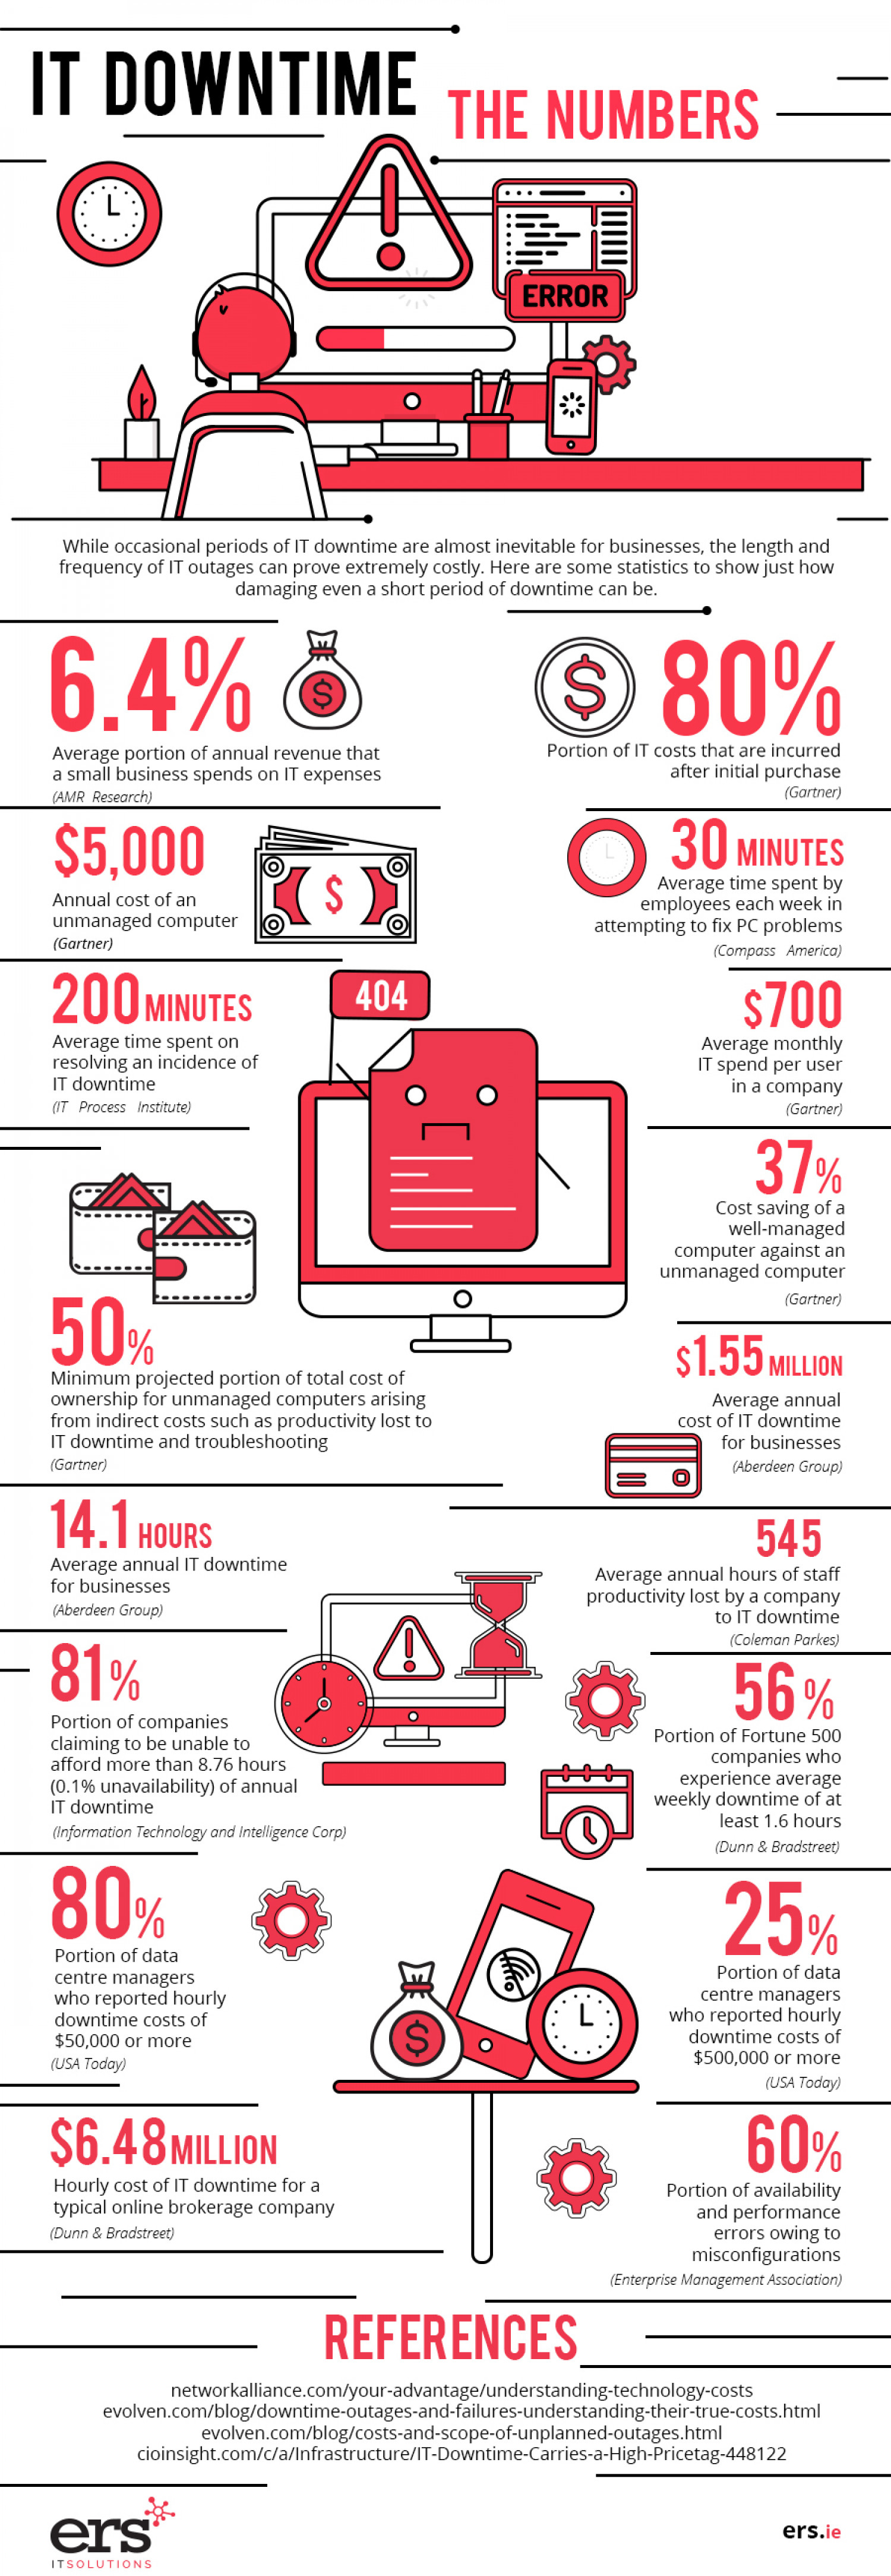 IT Downtime: The Numbers Infographic Infographic